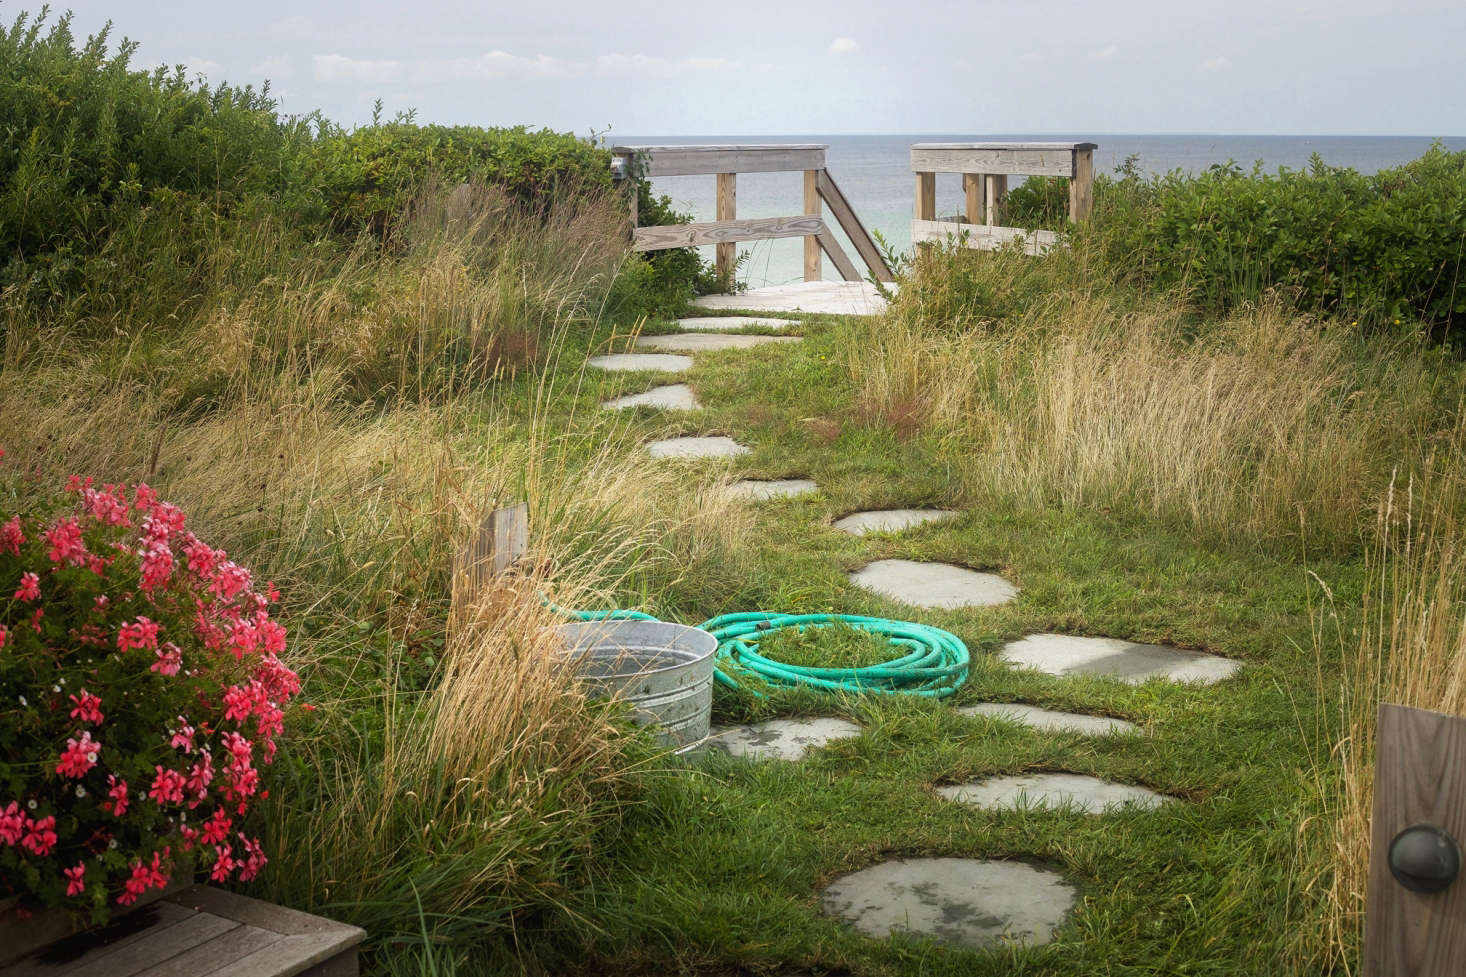 From the courtyard a traditional stone path leads to the steps down to the beach. One of our favorite informal elements is the simple hose and galvanized tube for washing sandy feet.